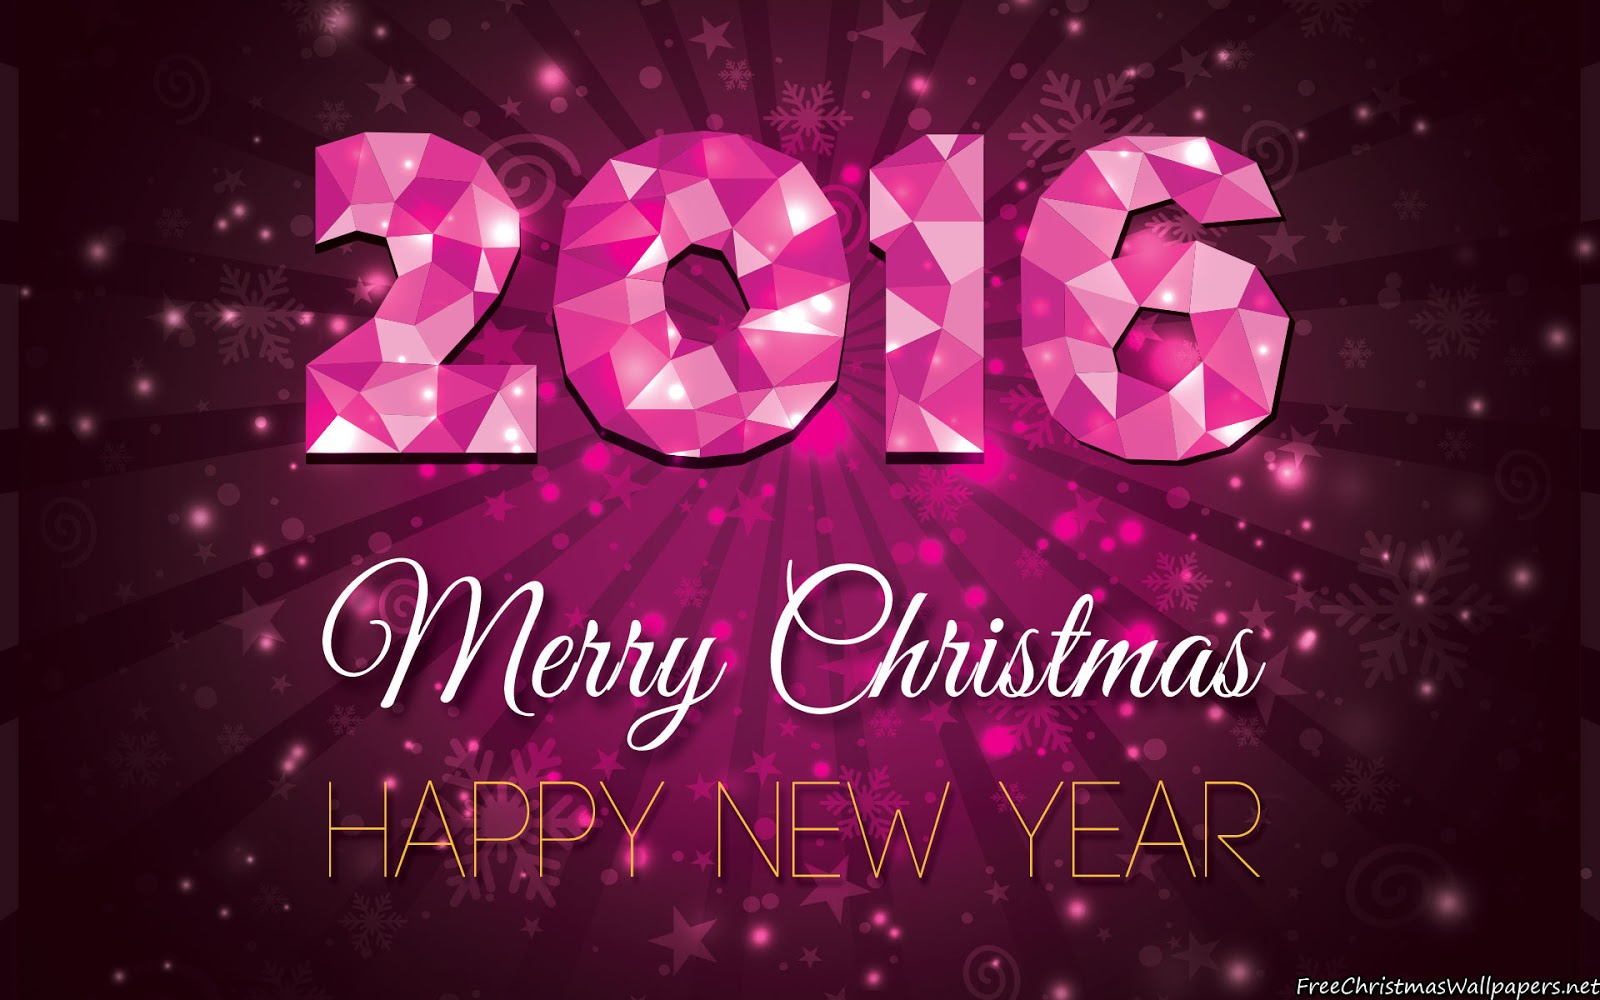 Wallpaper download new year 2016 - Happy New Year Wallpaper Happy New Year Wallpapers Merry Christmas And Happy New Year